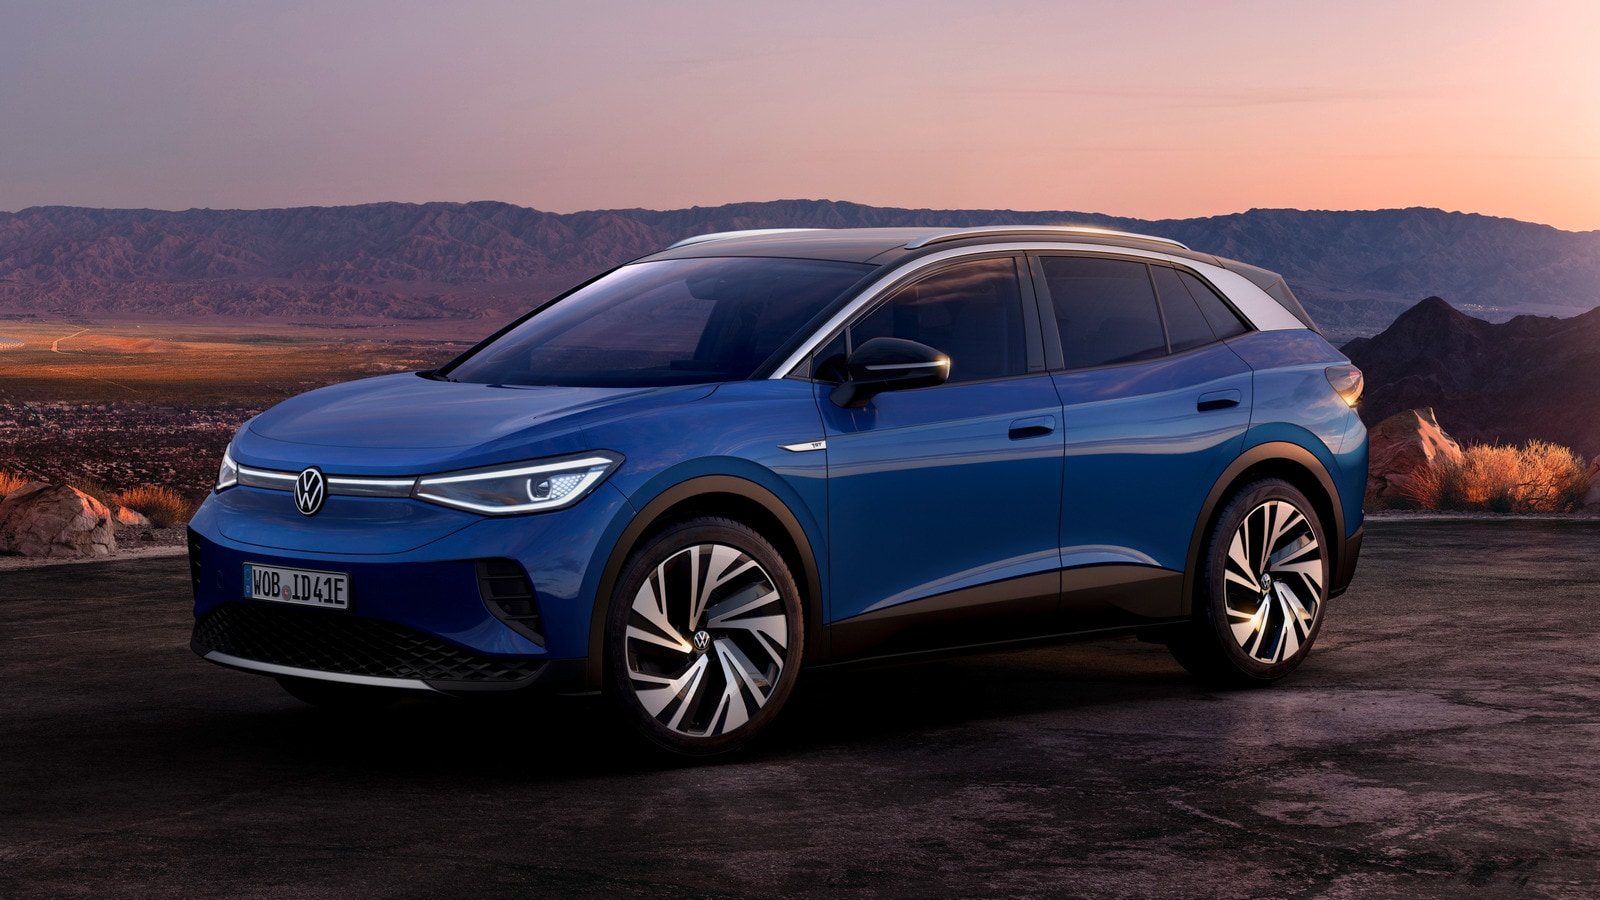 2021 Volkswagen Id4 blue on a hill